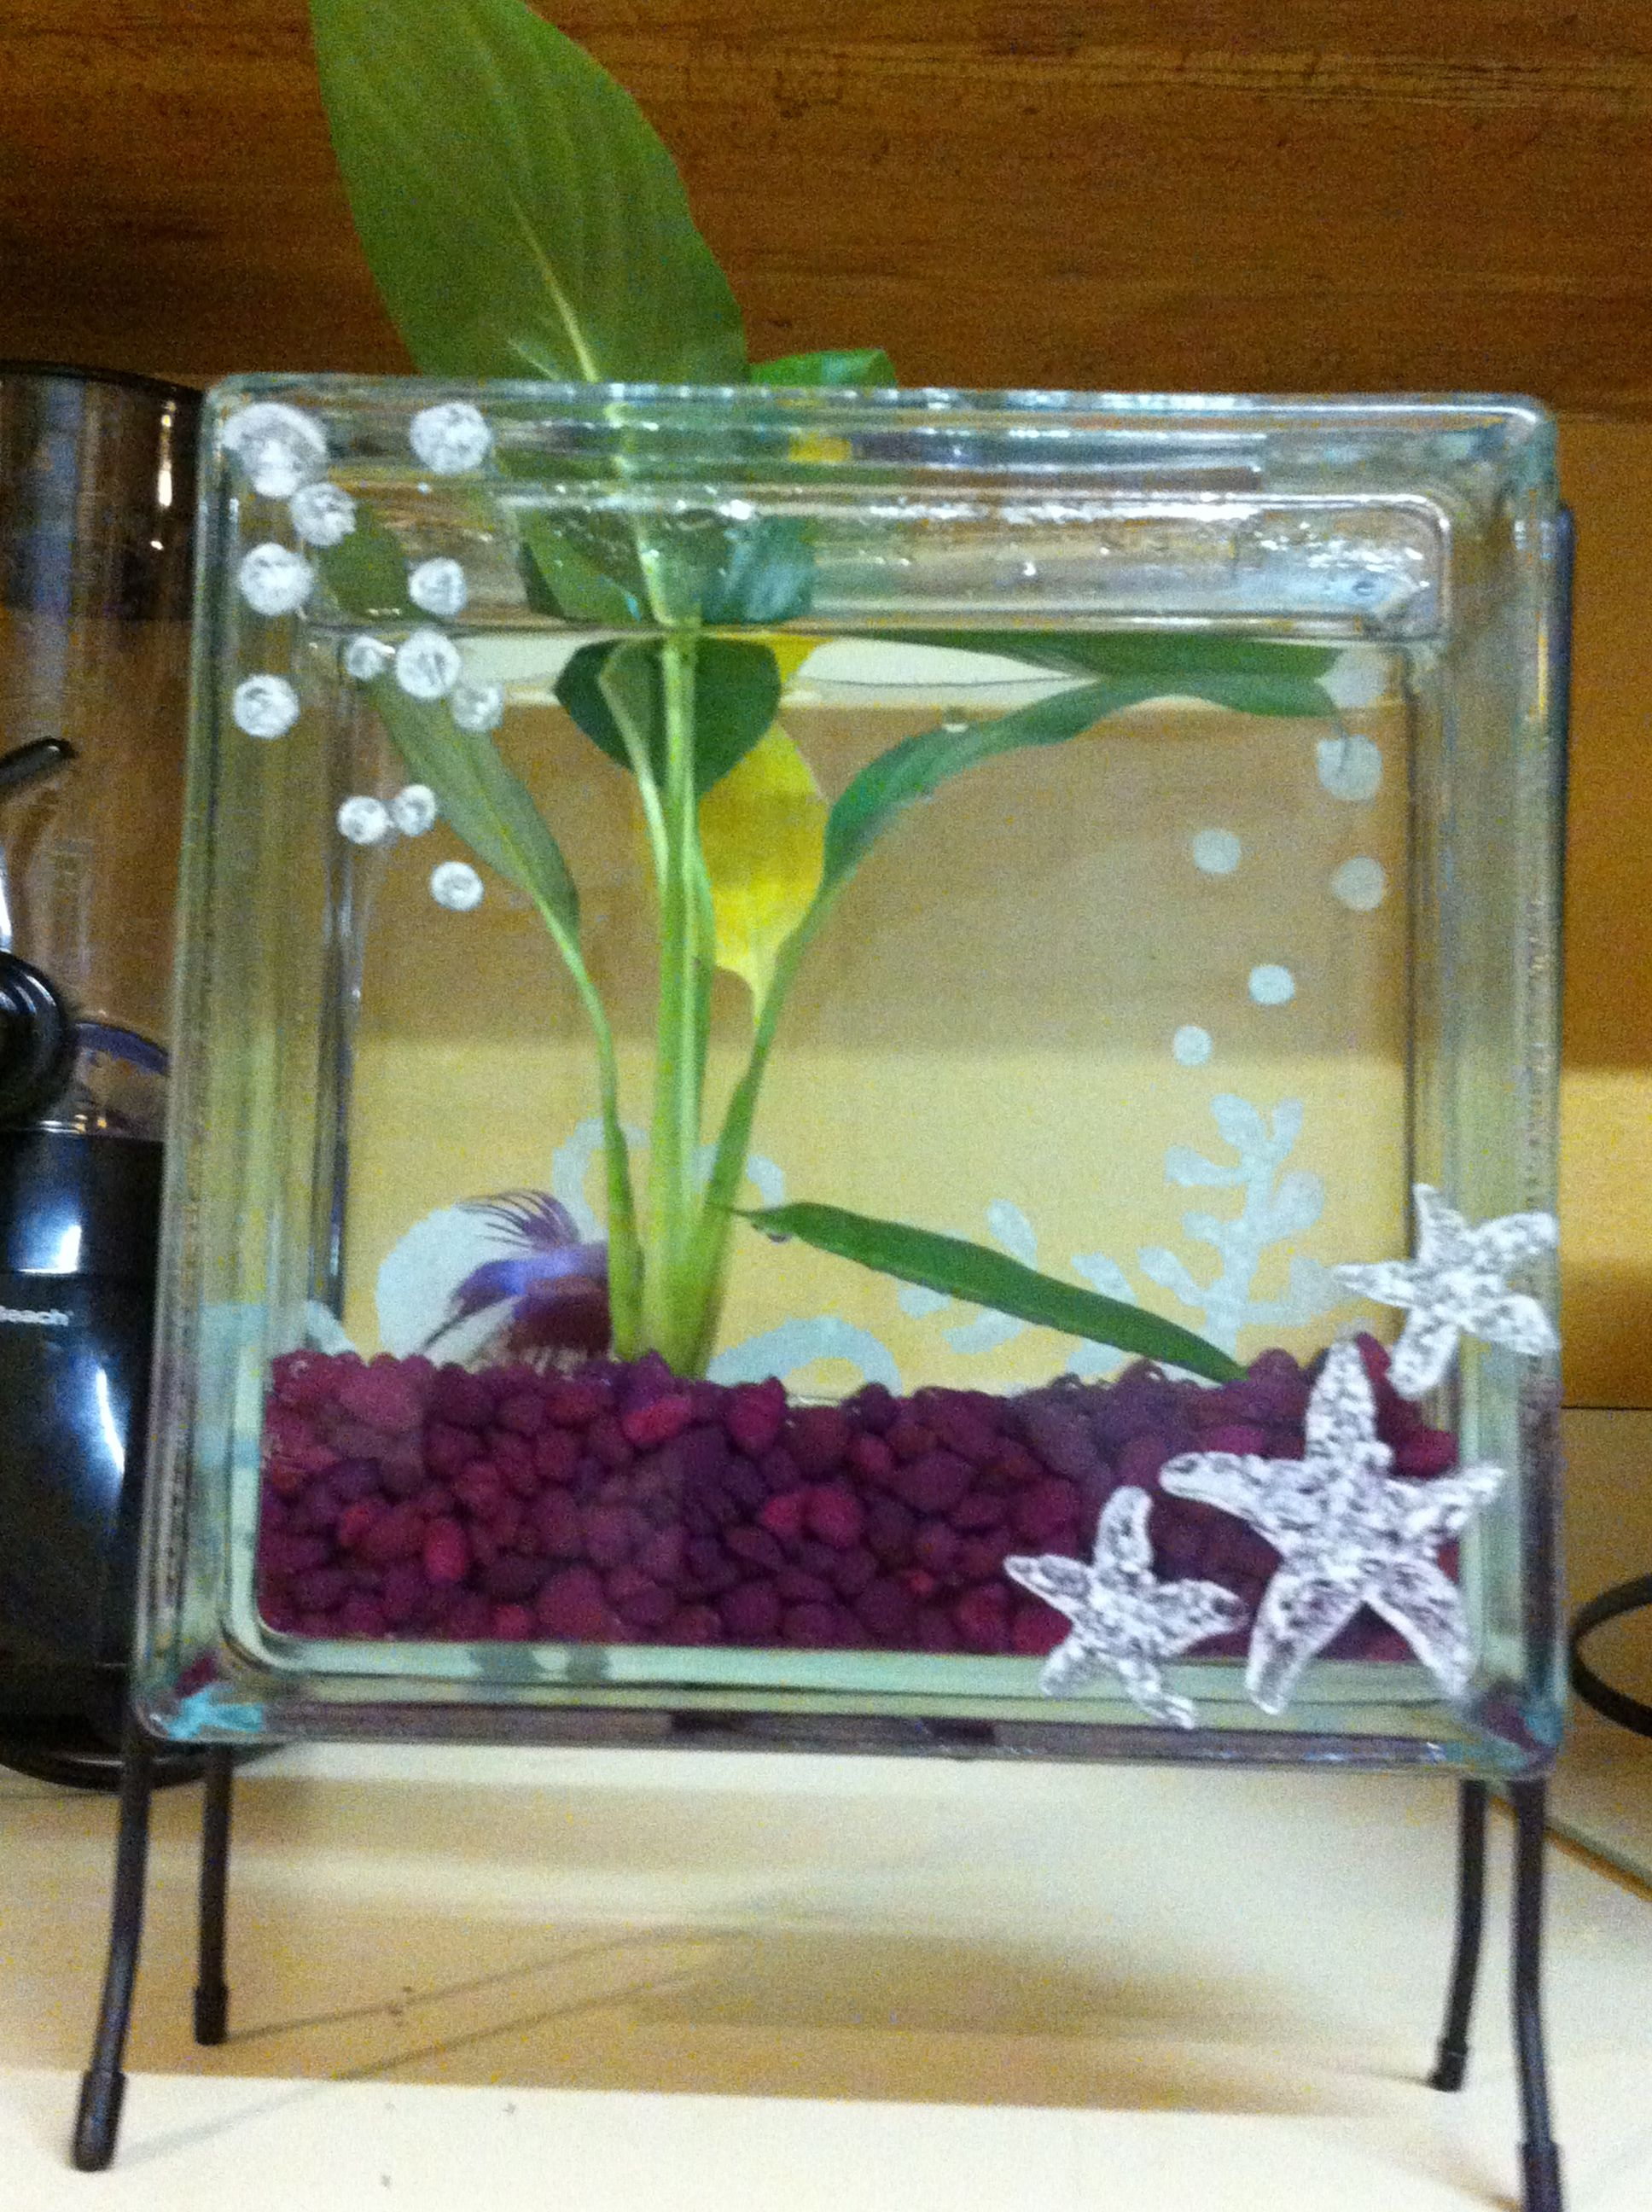 Bata fish tank made from a crafty block with echit paint